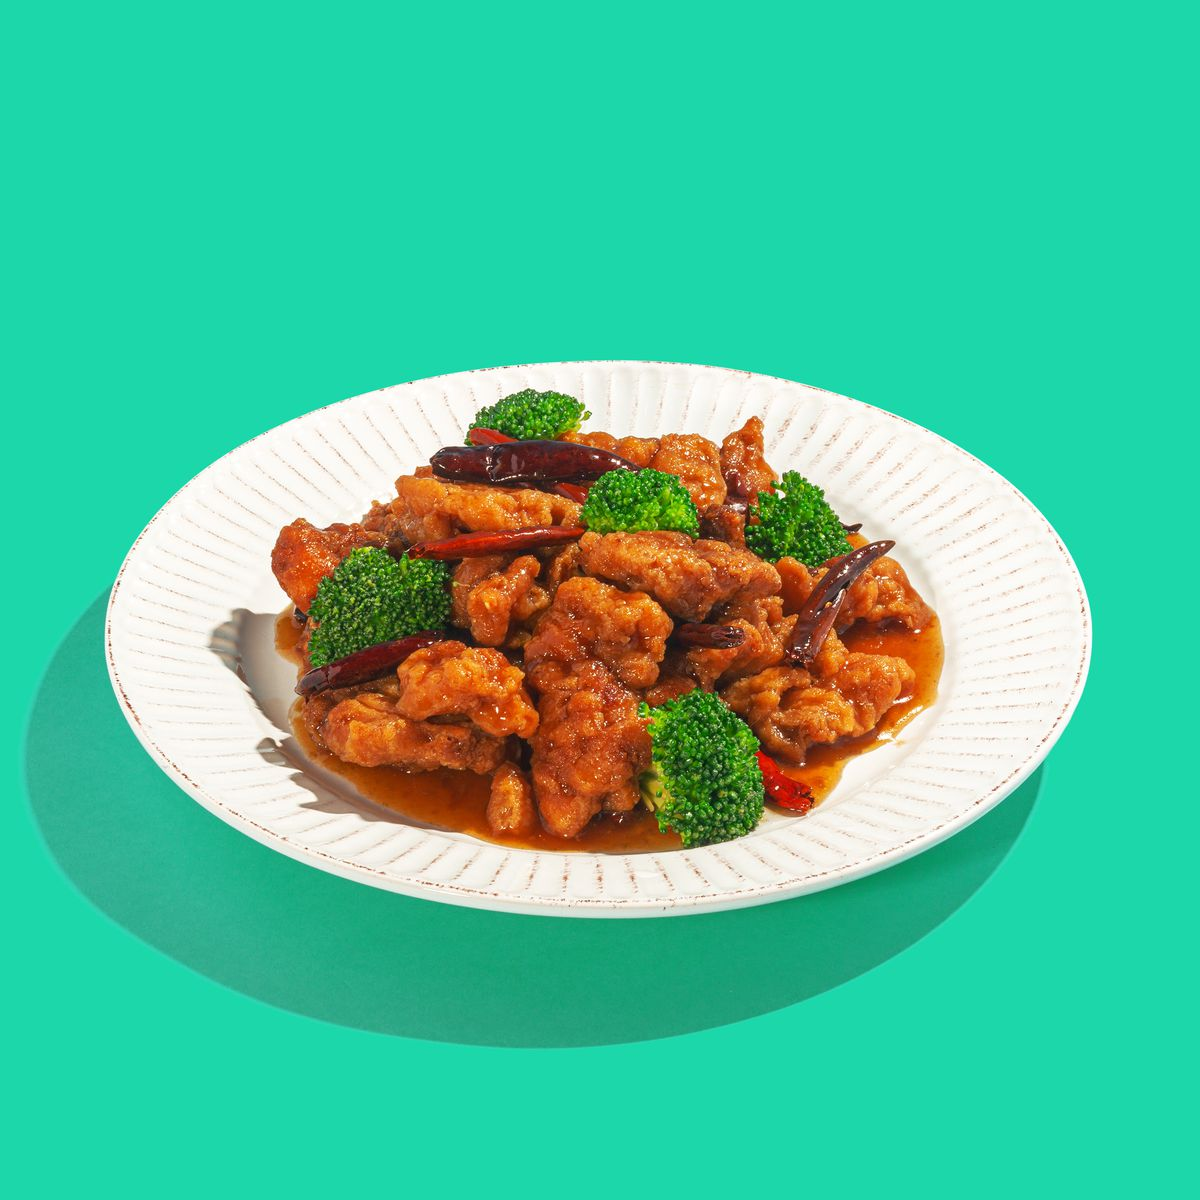 A white plate on a green background with pieces of orange chicken, dried red chiles, and broccoli